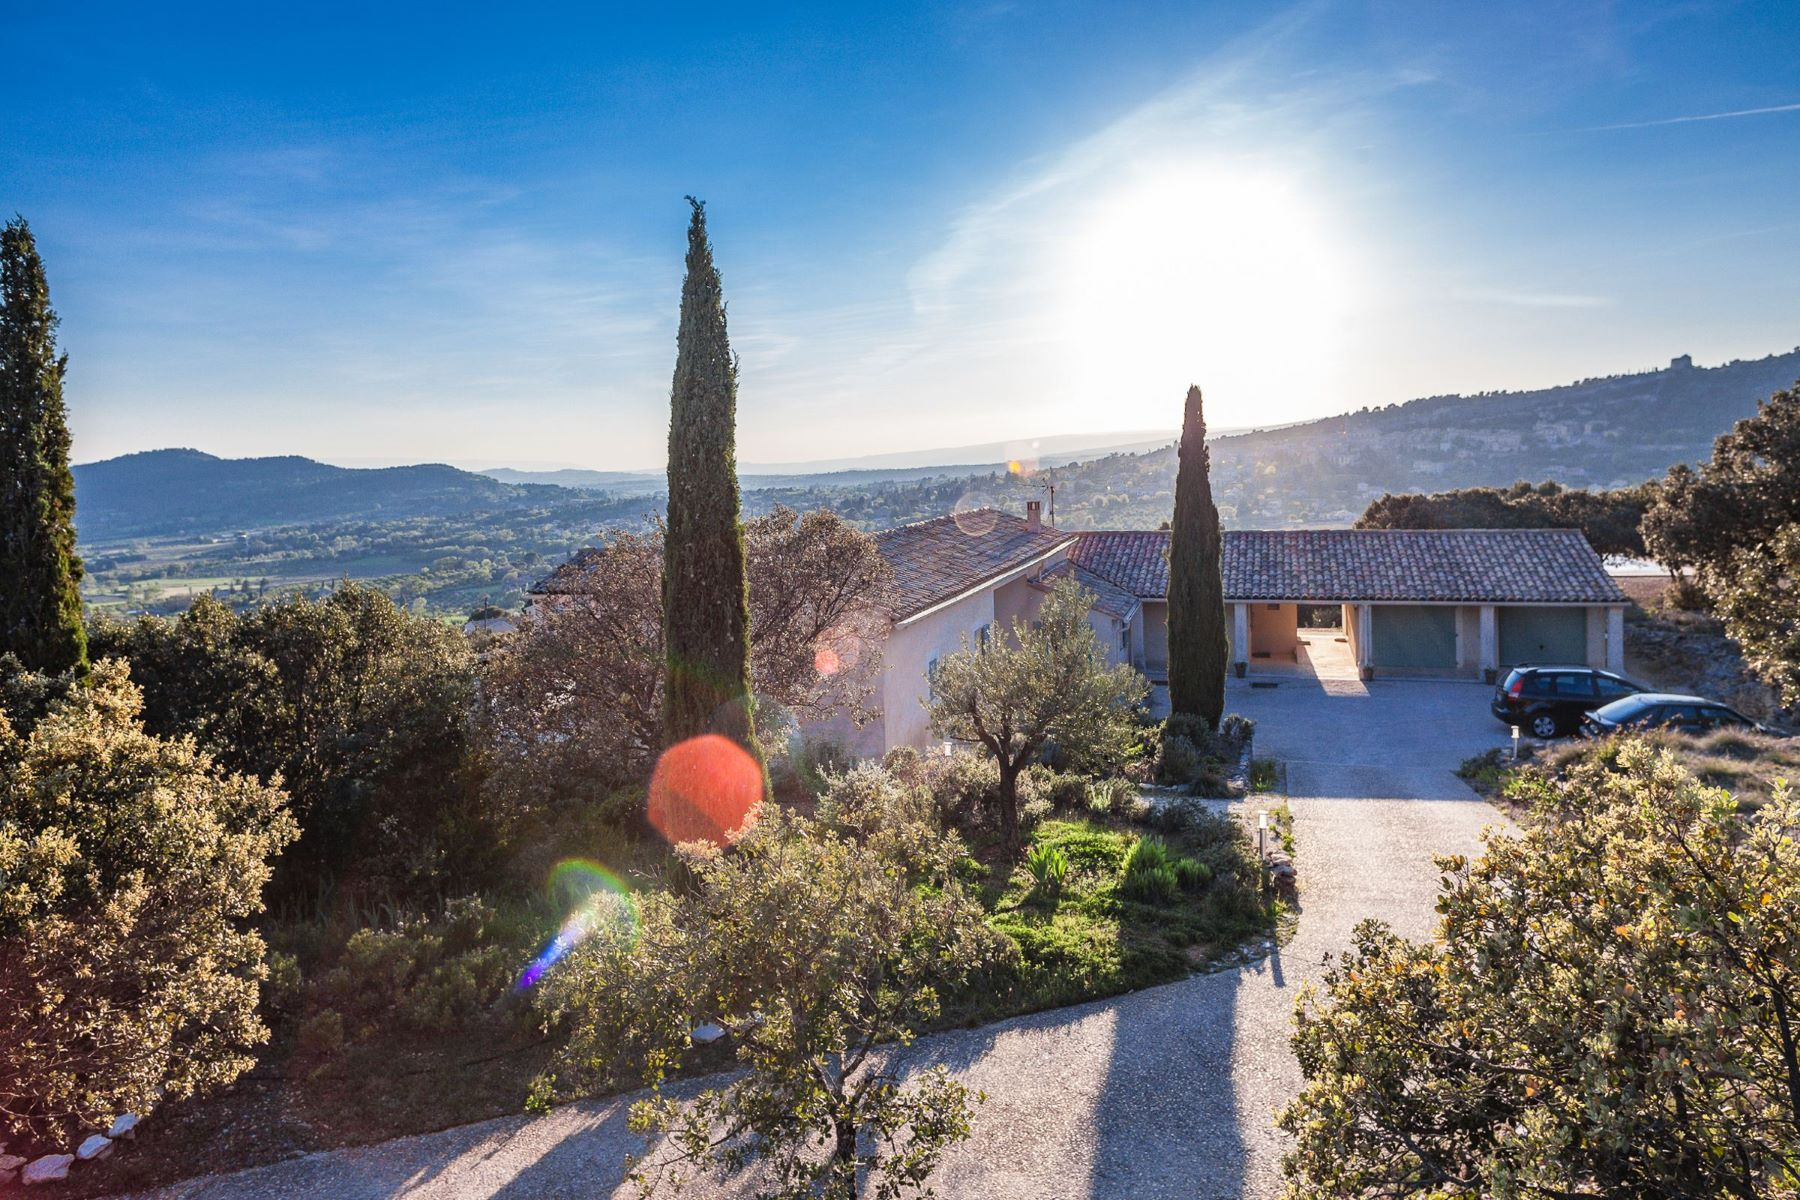 Single Family Home for Sale at Unobstructed view for this home in Provence Gordes, Provence-Alpes-Cote D'Azur, 84220 France